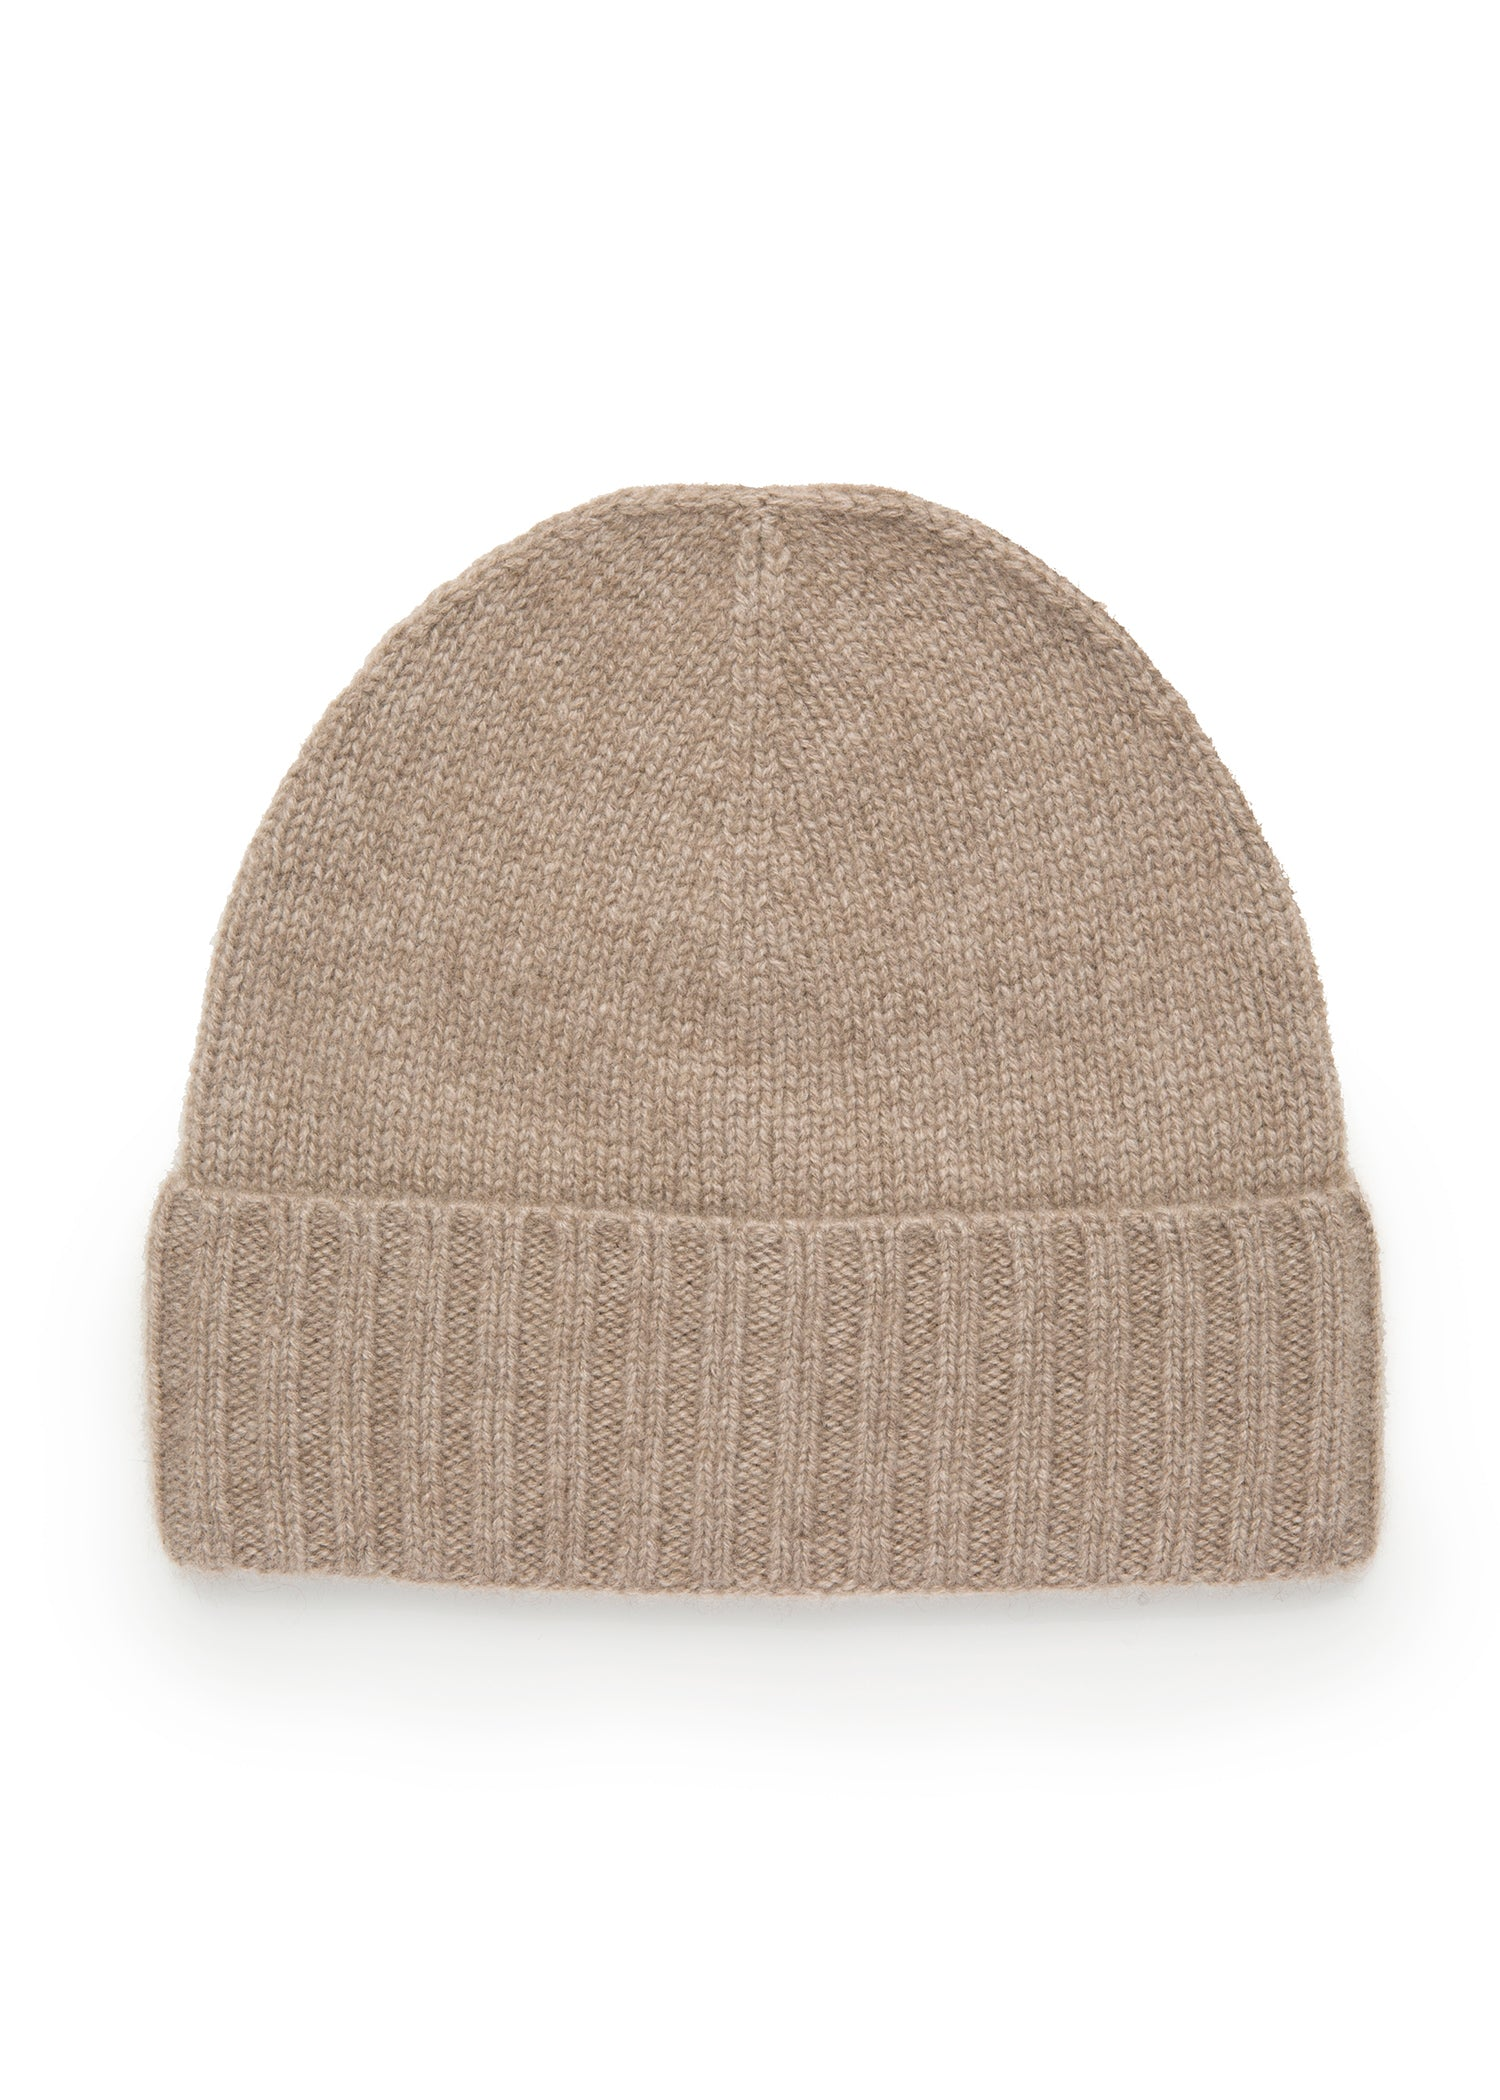 womens natural cashmere beanie hat